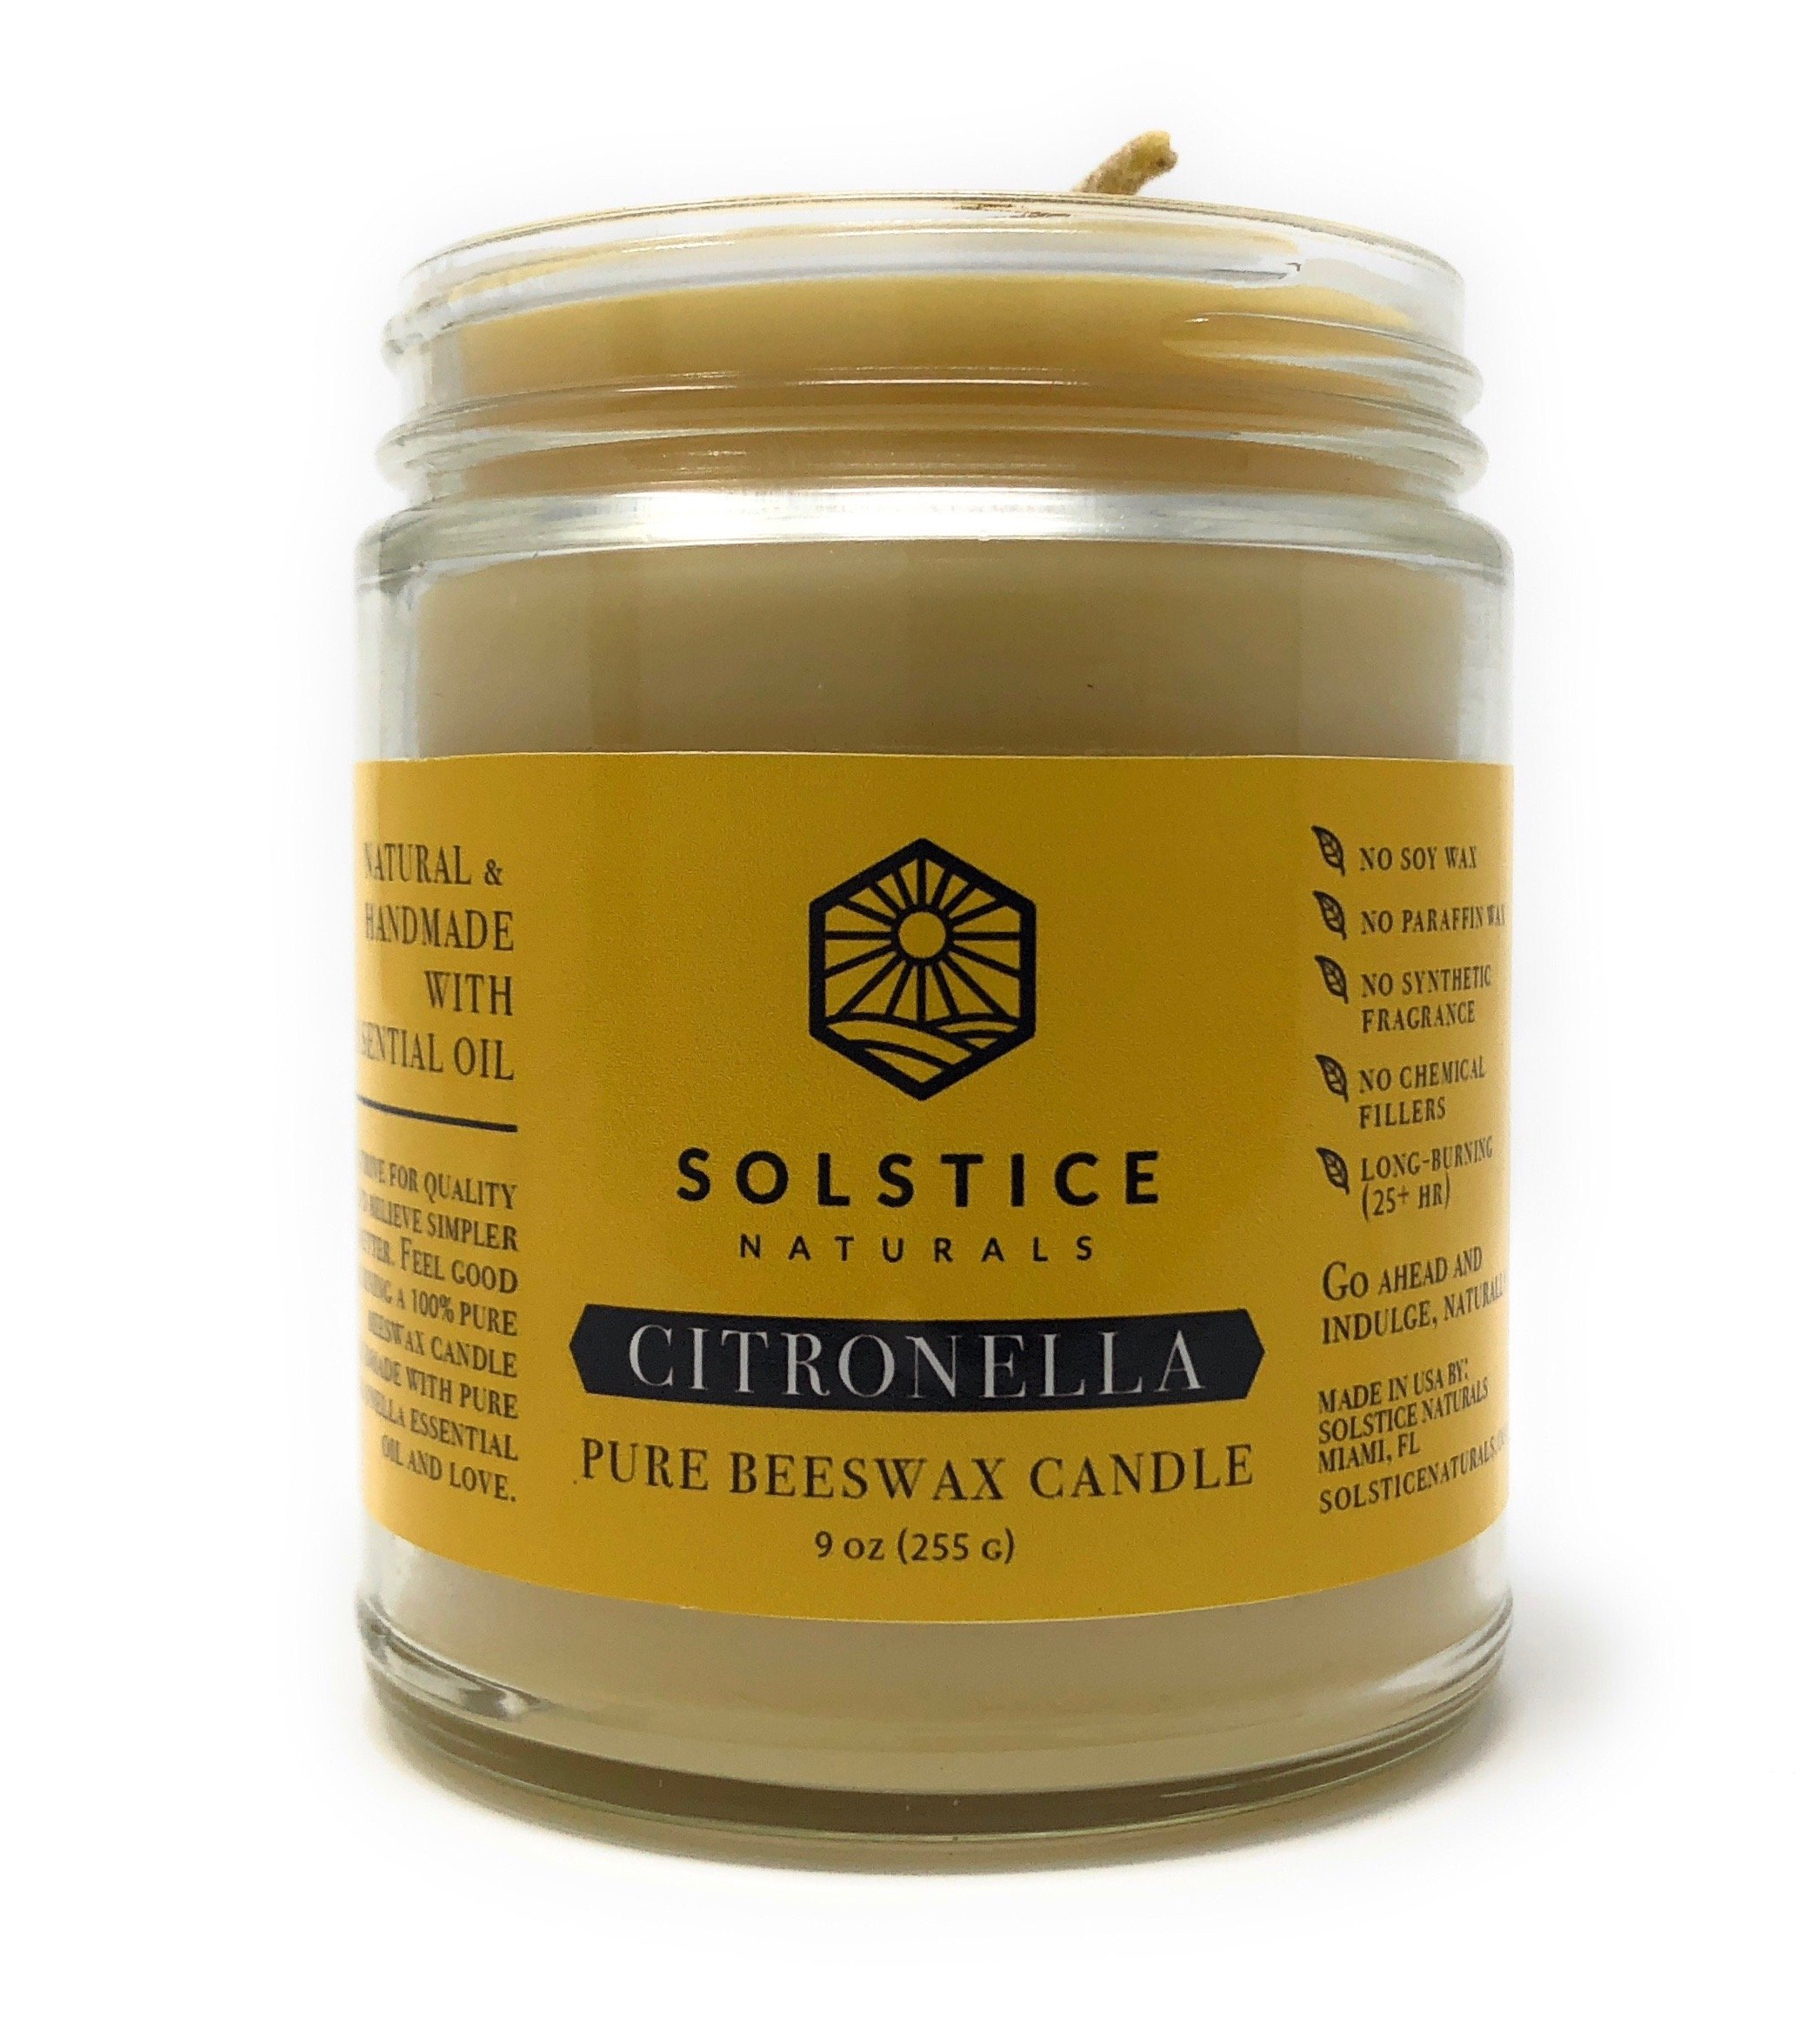 Citronella Scented All Natural 100% Pure Beeswax Aromatherapy Candle Made with Essential Oil, 9 oz - Great for Outdoors Home Bathroom Living Room Office Study Yoga Spa